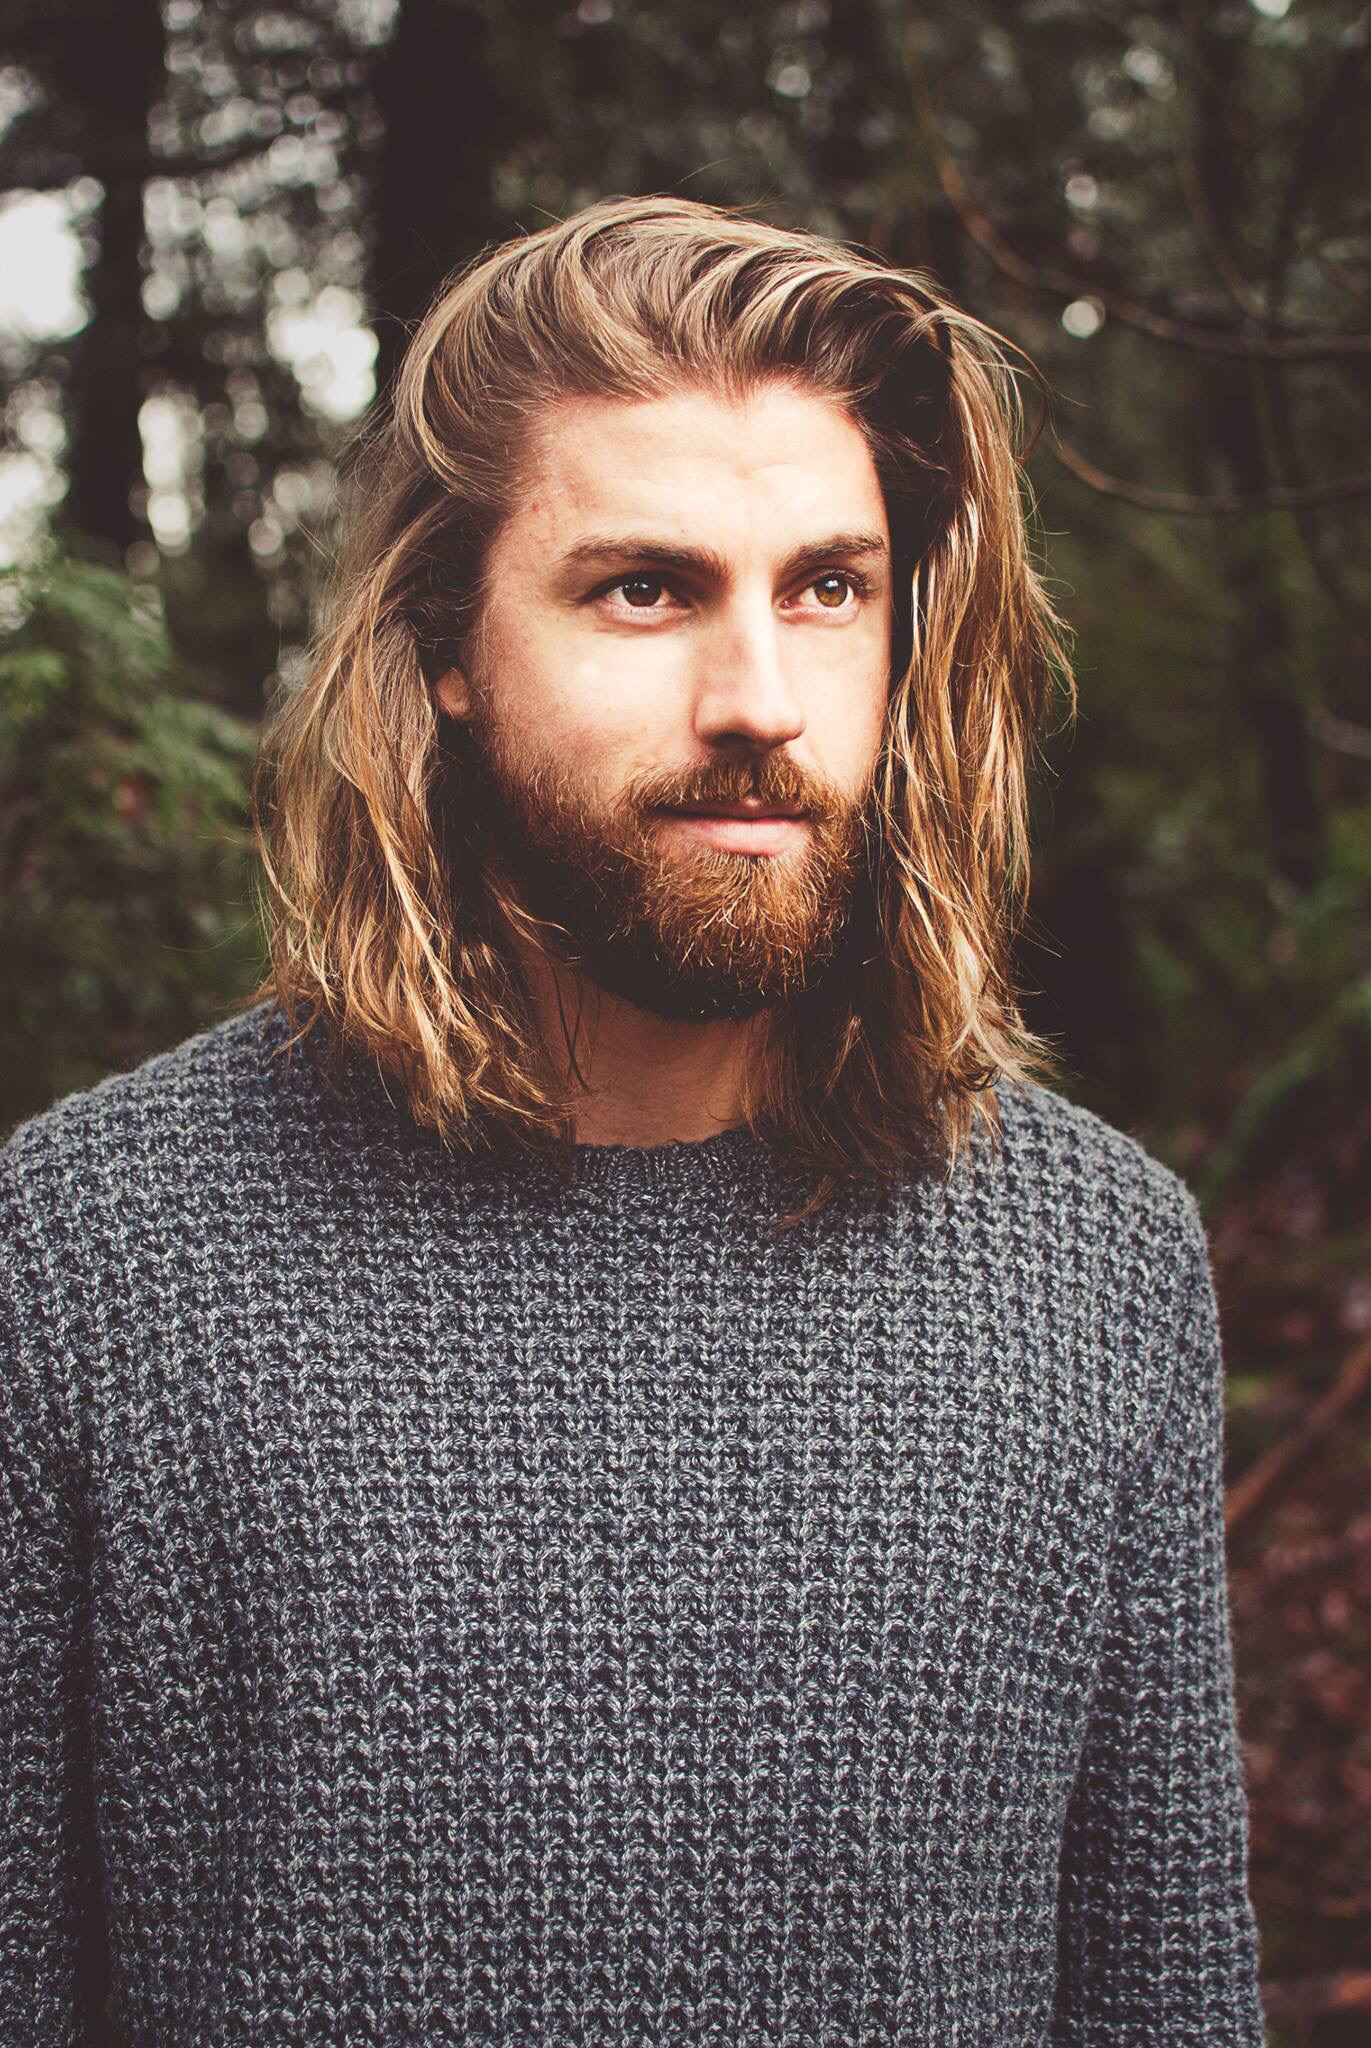 Coiffure Homme Viking Meet The Longhairs A Global Community For Guys With Long